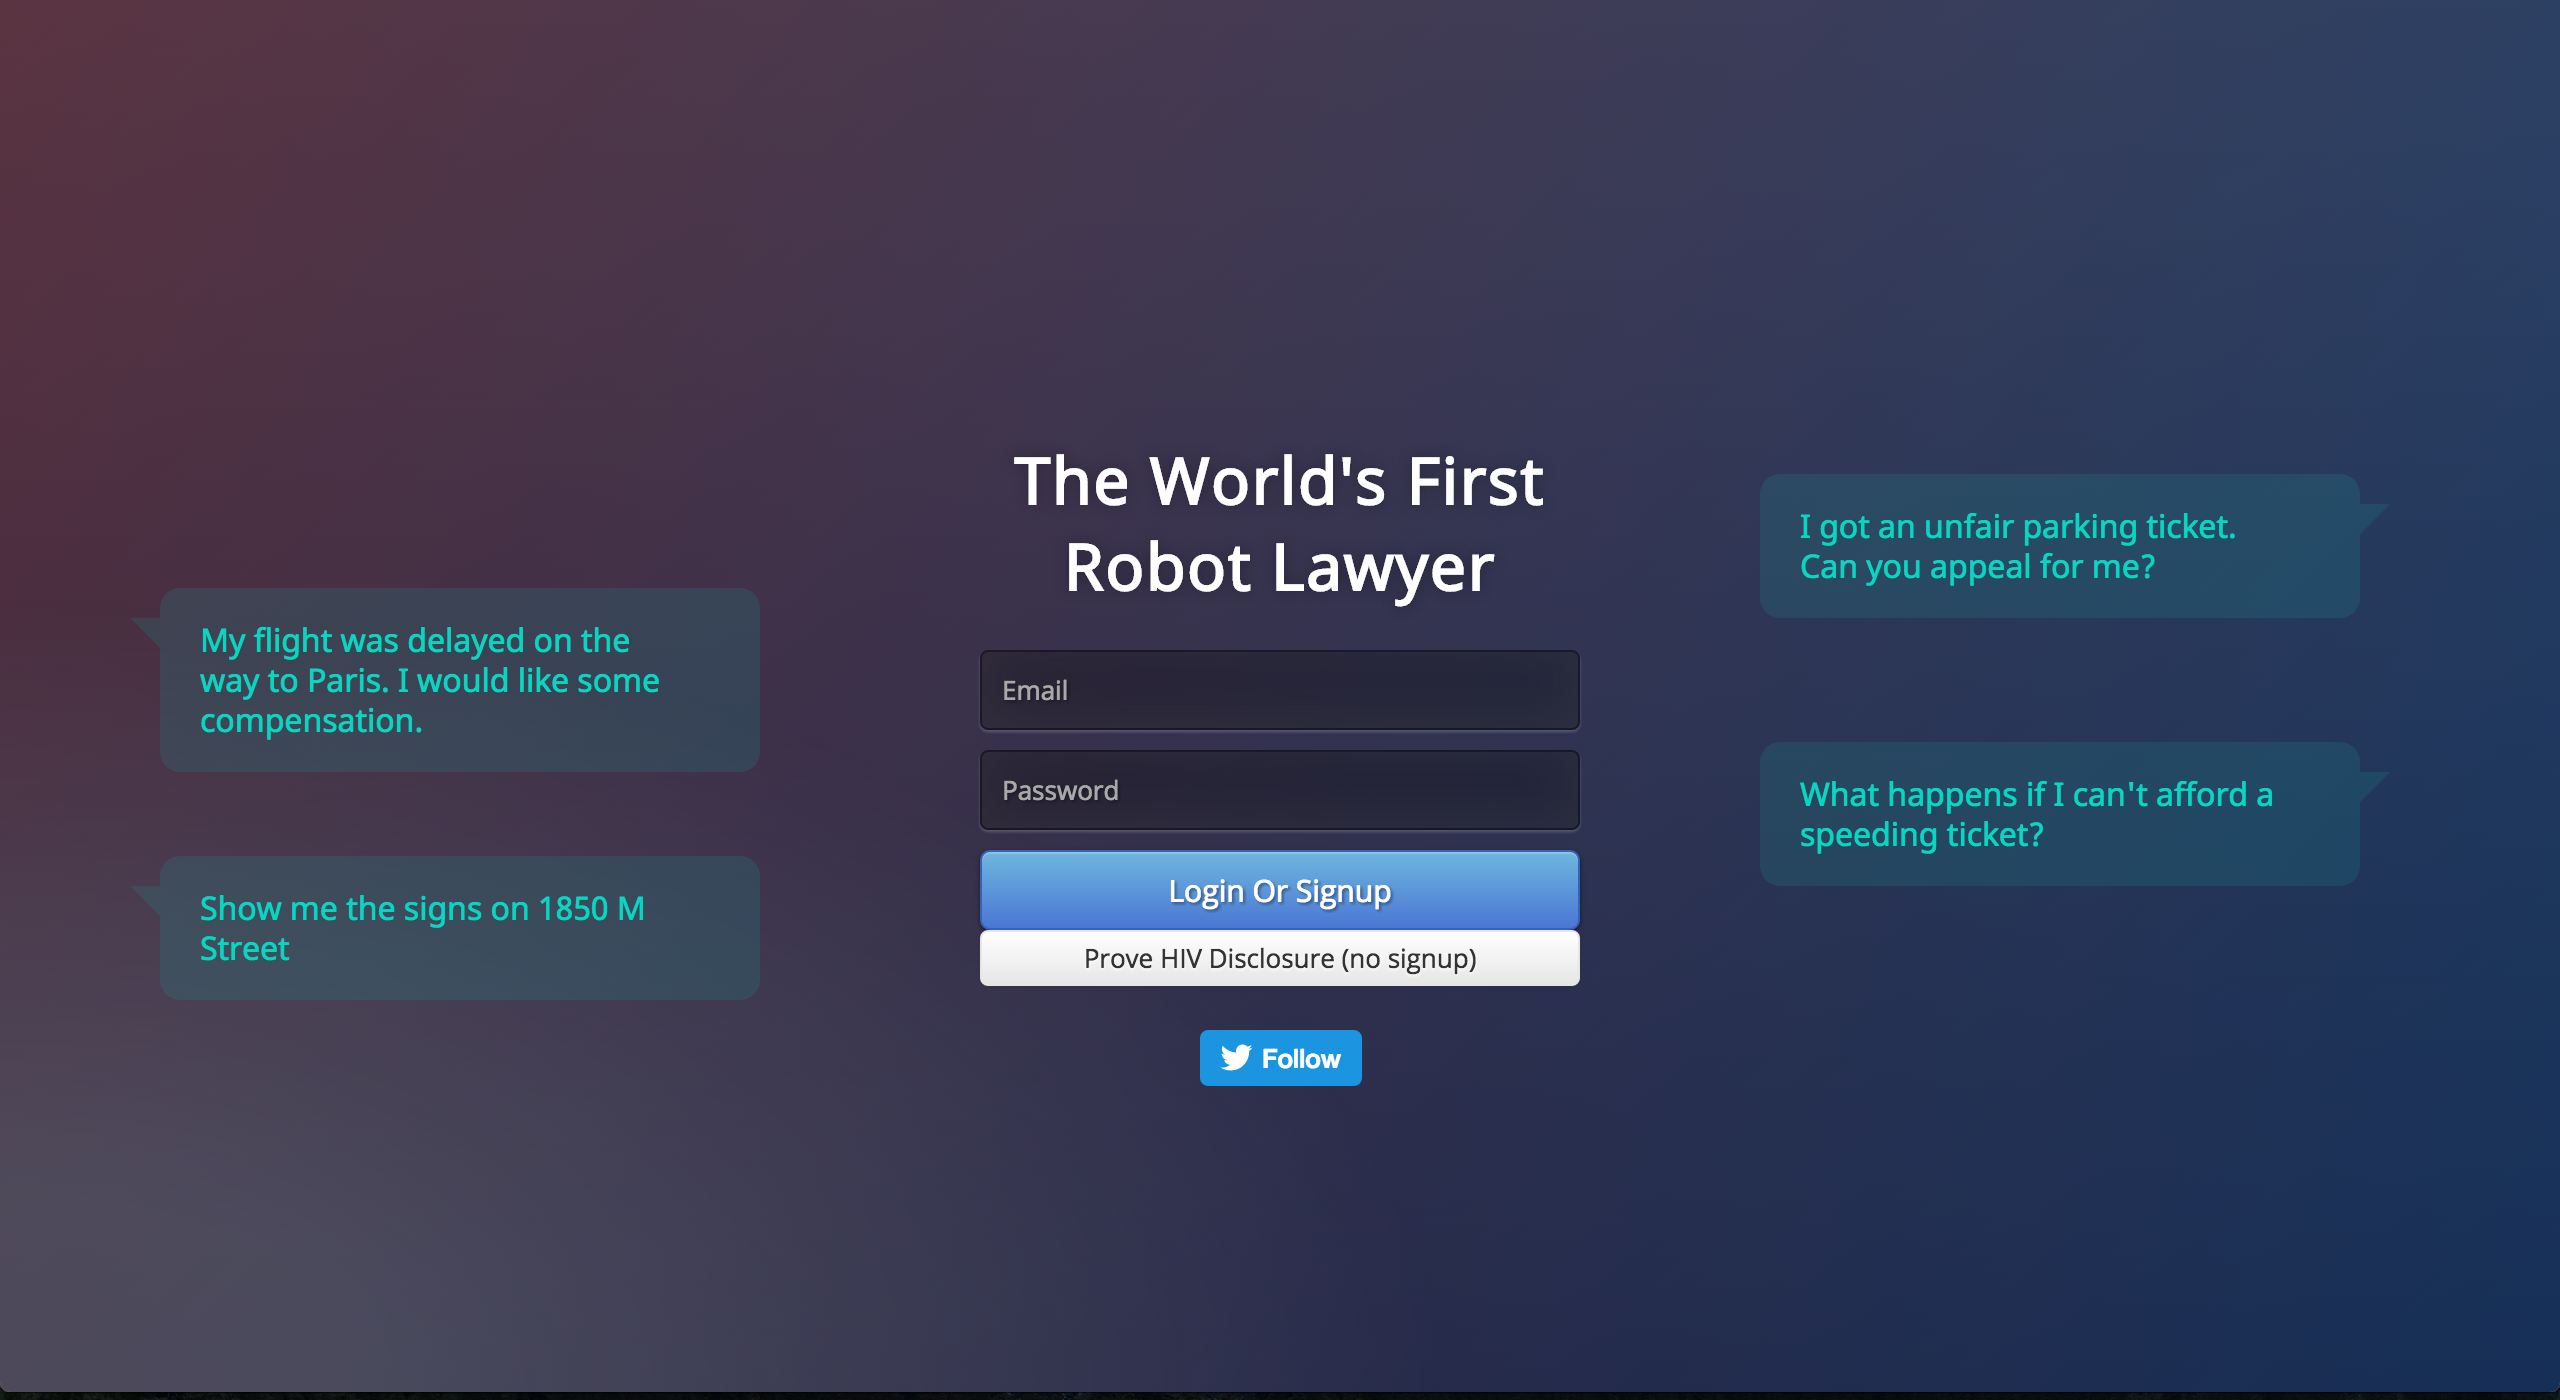 The World's First Robot Lawyer 🤖 - Technology - Global